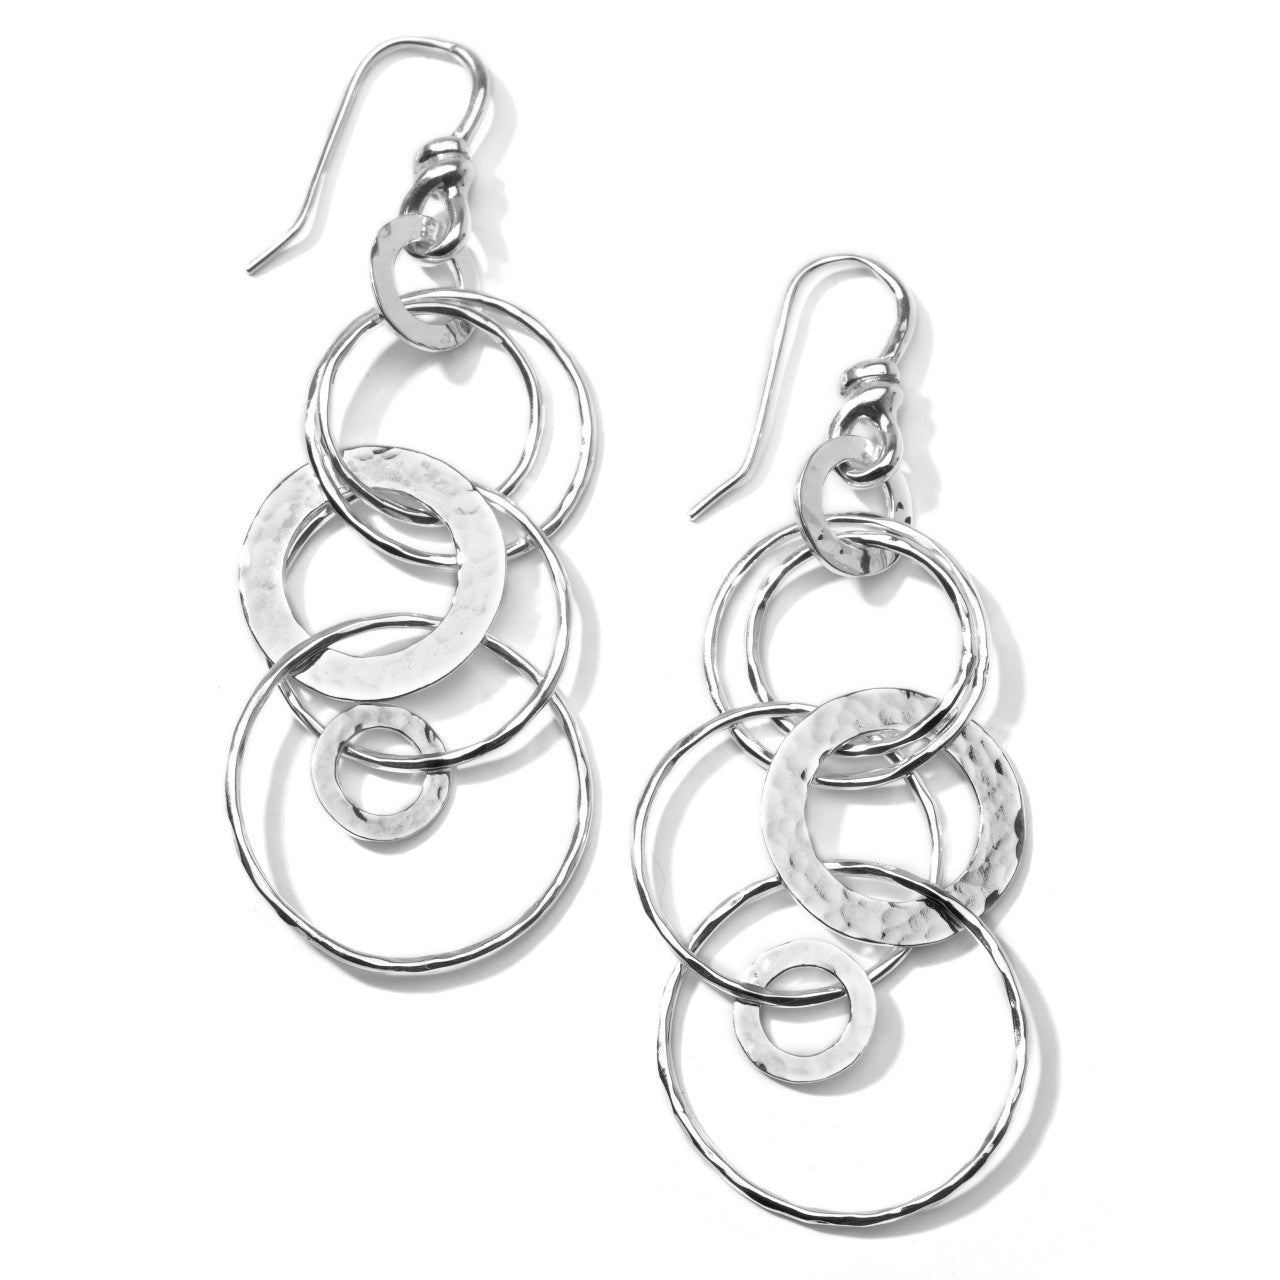 IPPOLITA Classico Sterling Silver Hammered Jet Set Earrings